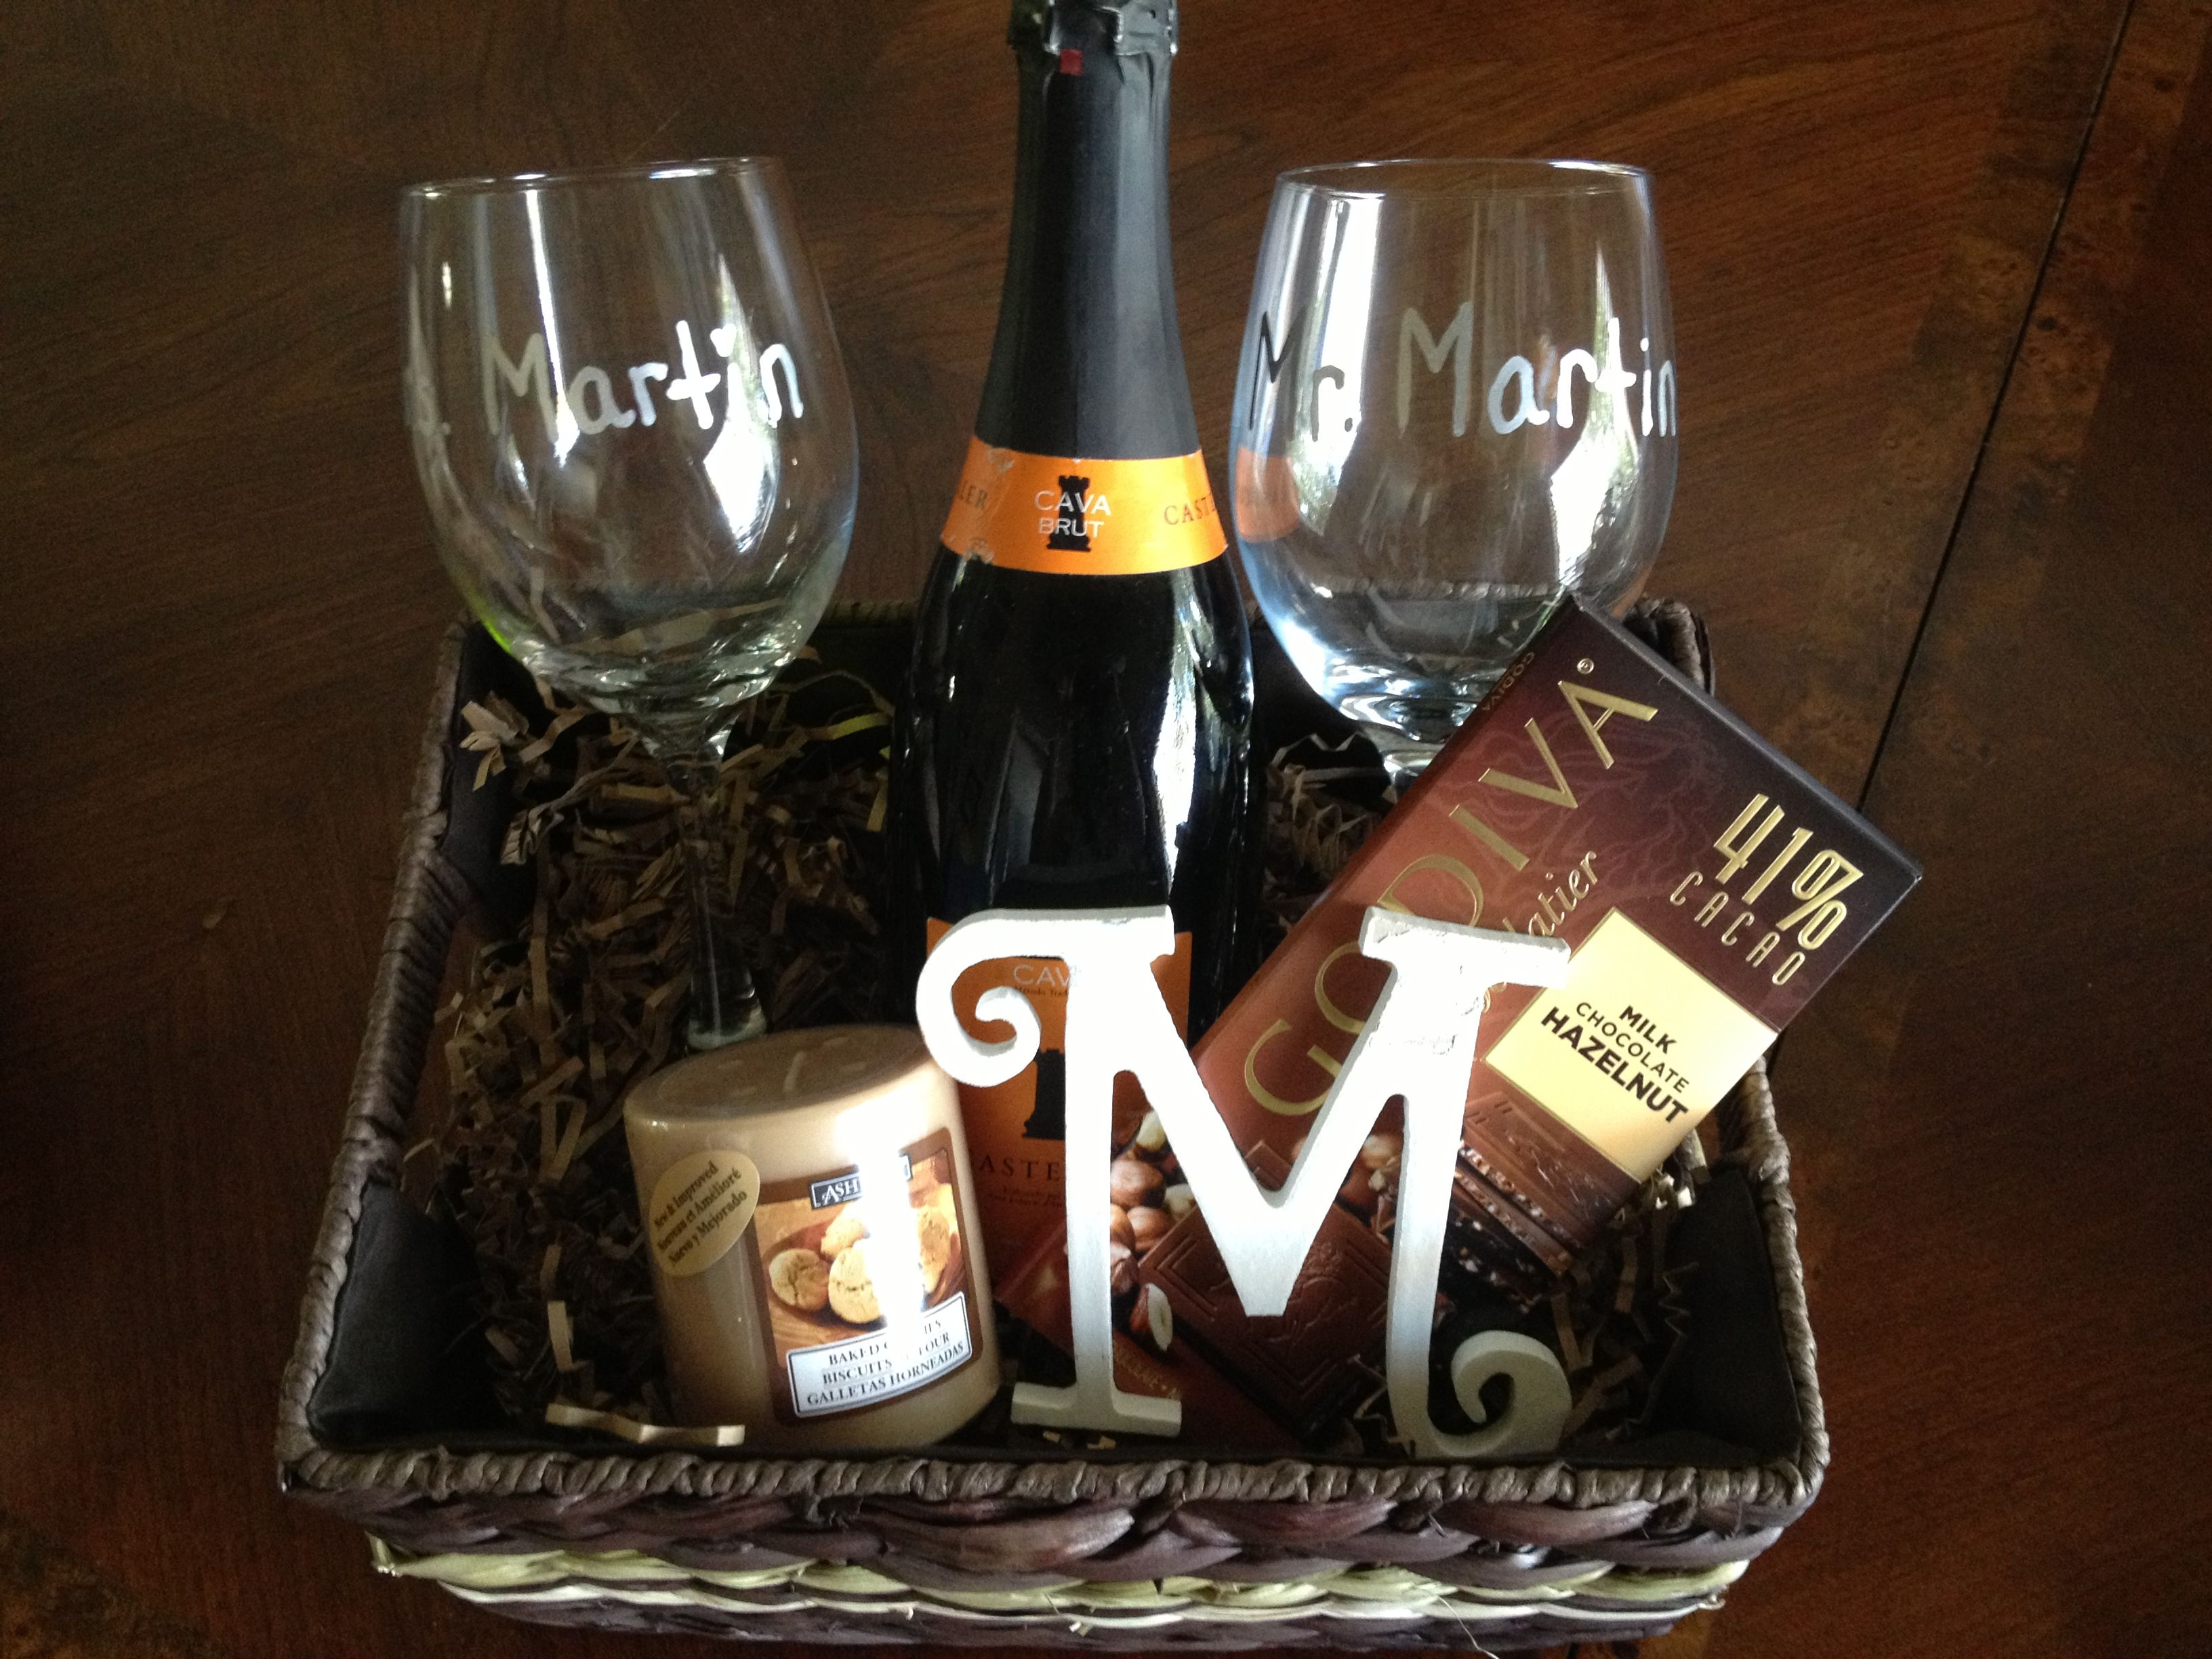 Wedding Gift Basket Wine : gifts wedding gifts wedding ideas bridal showers wine gift baskets ...